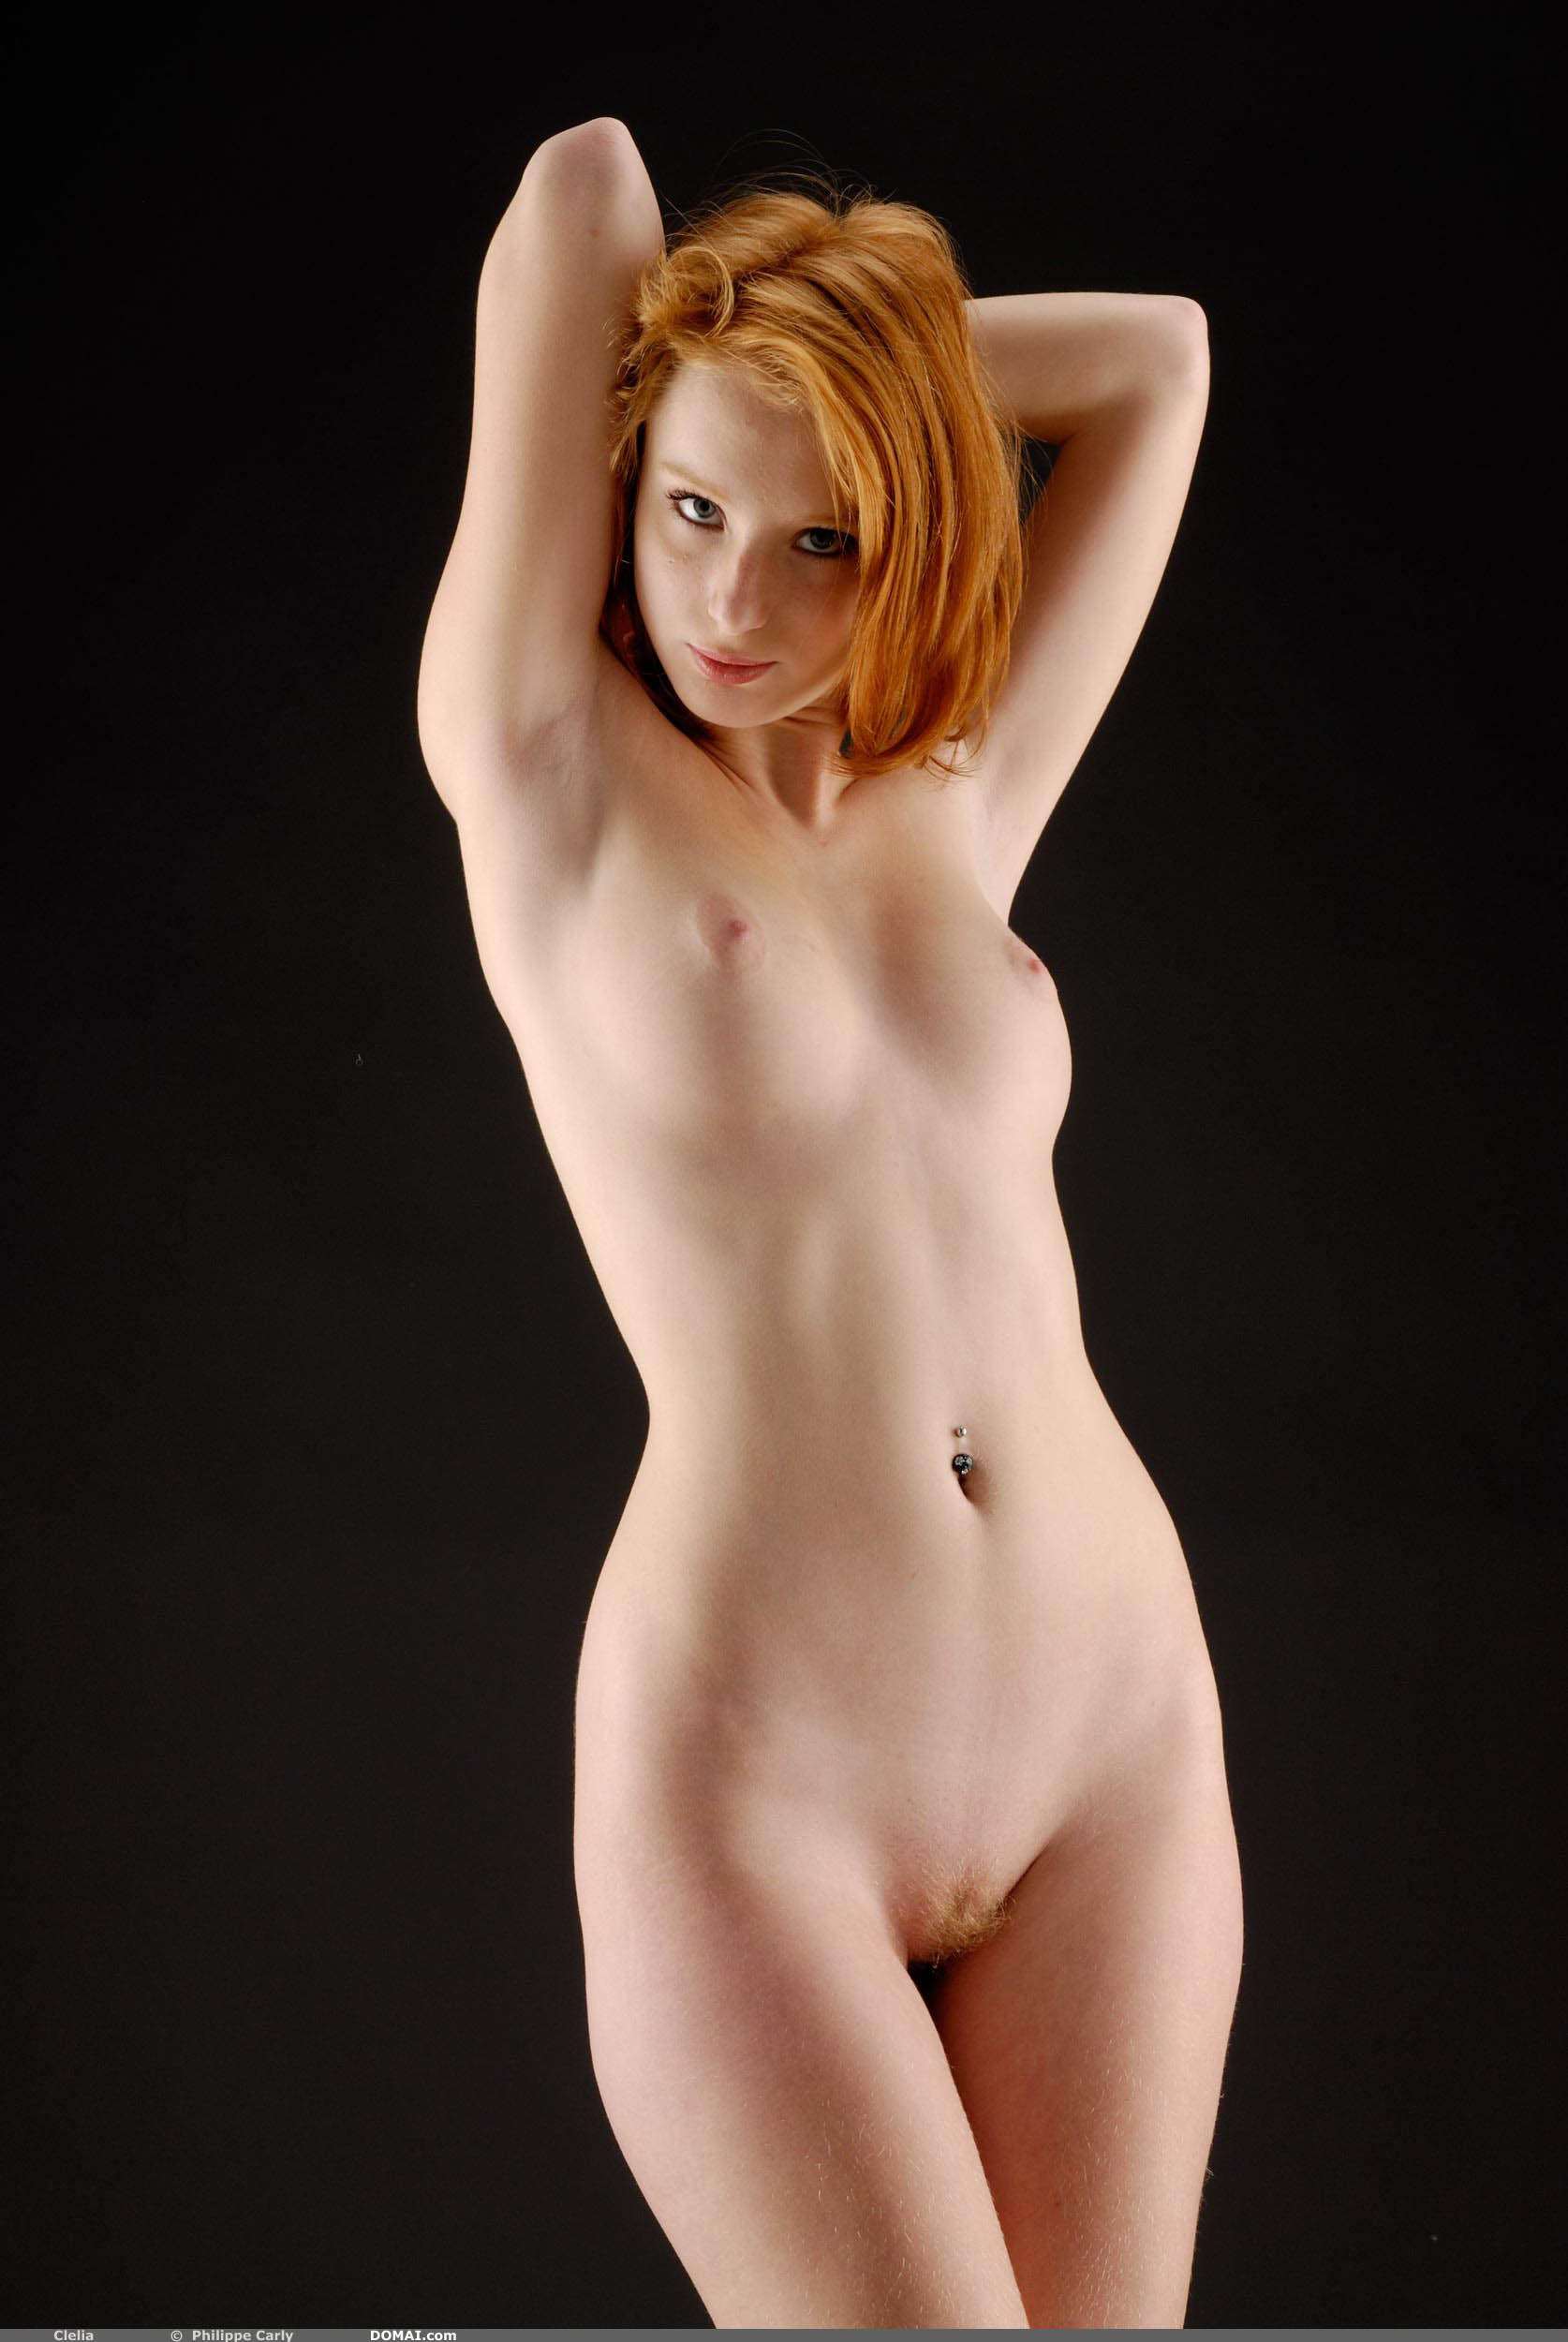 redhead-candids-nudes-young